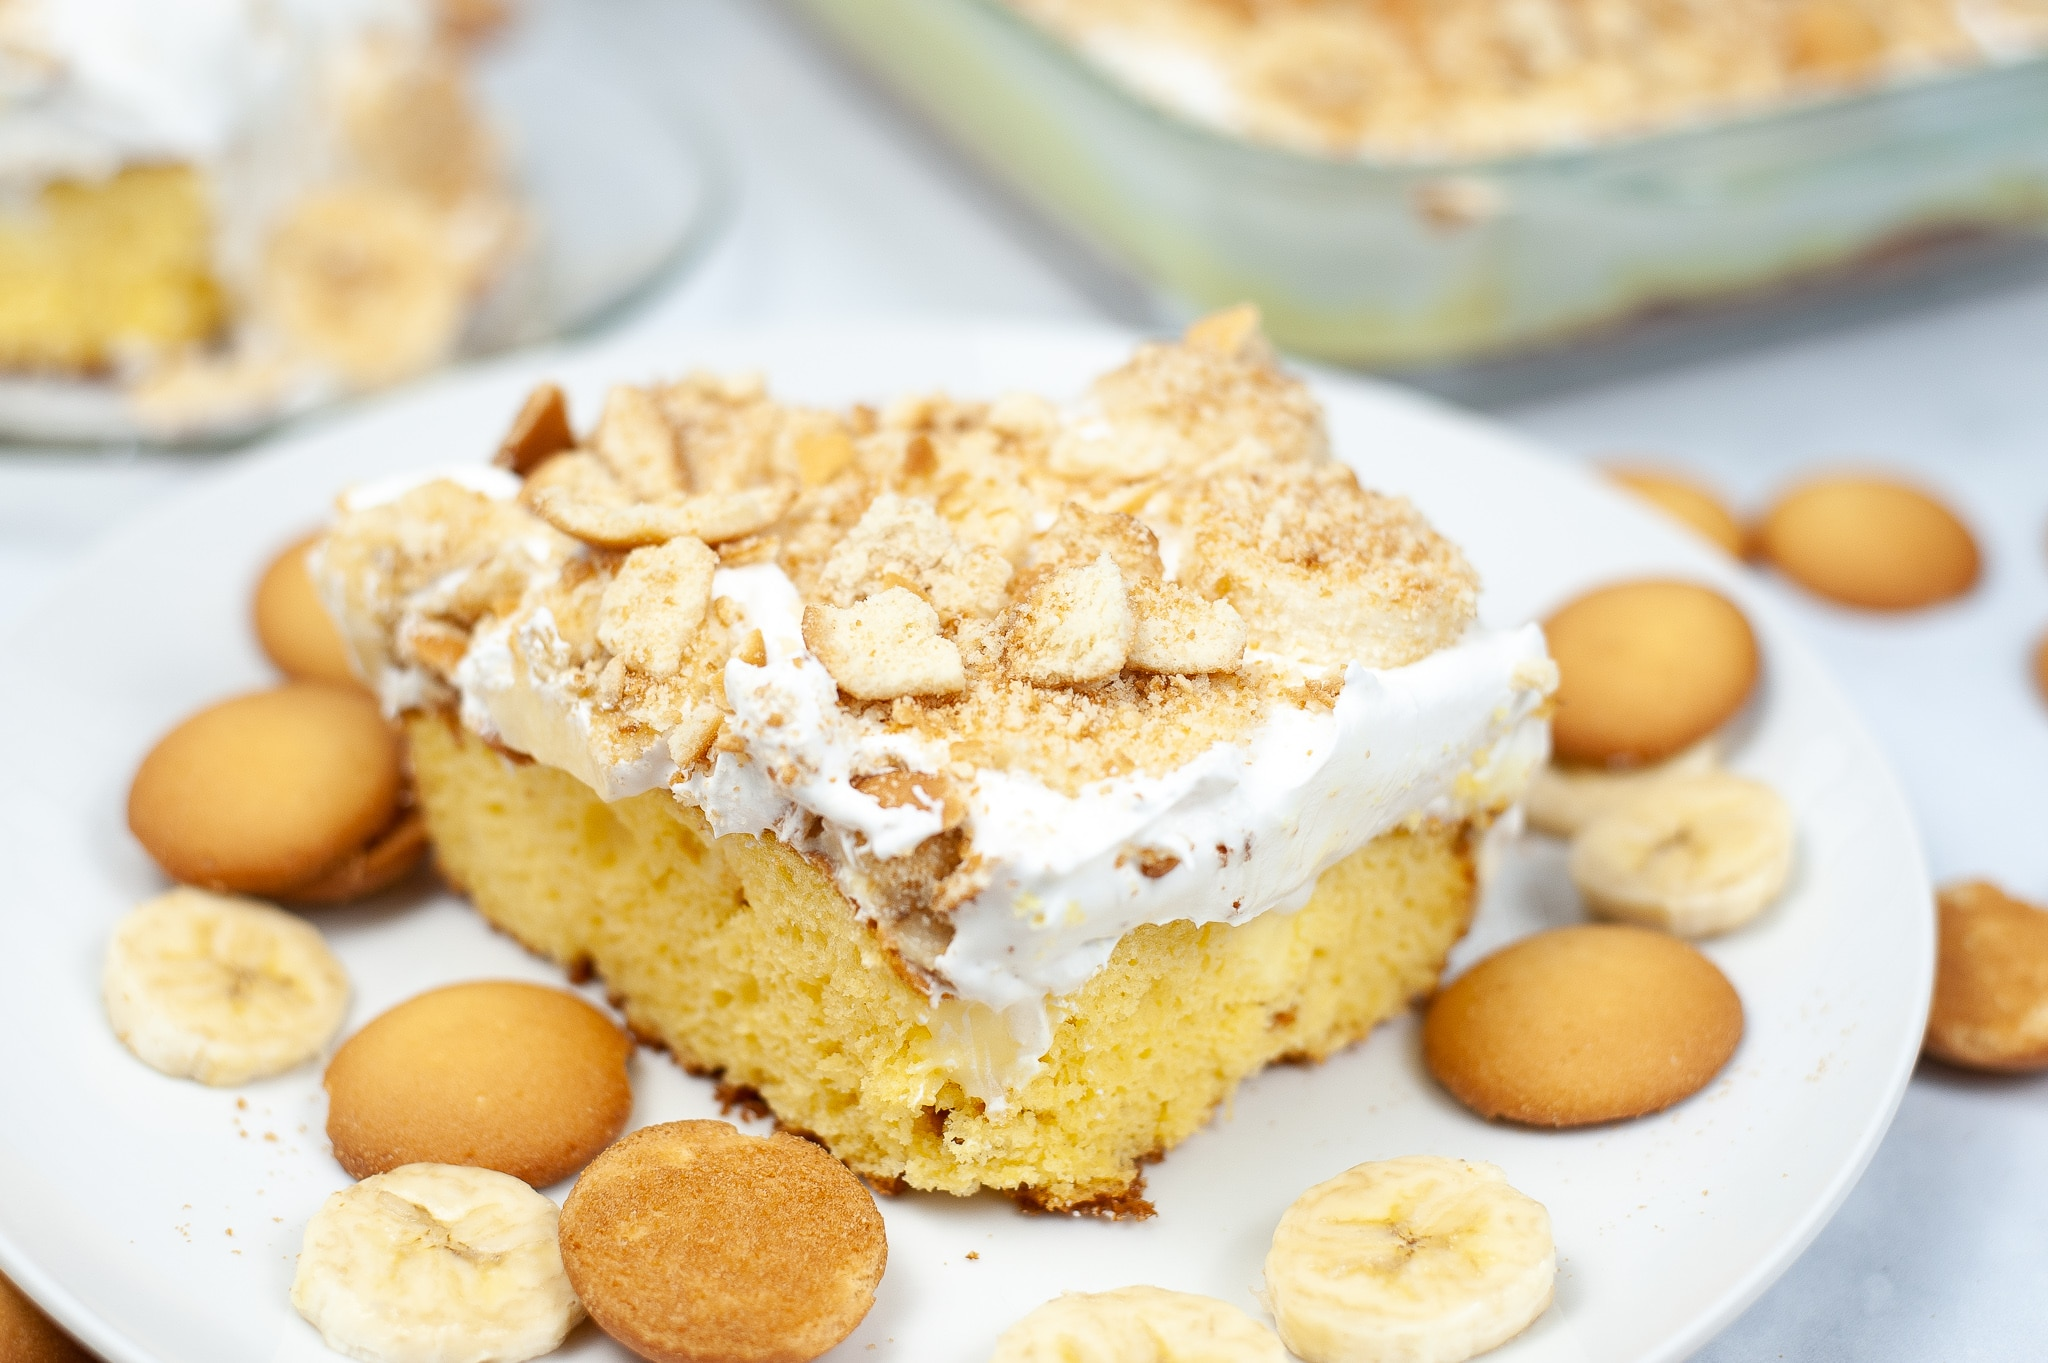 a close up of a slice of Banana Pudding Poke Cake, vanilla wafers, and banana slices on a white plate